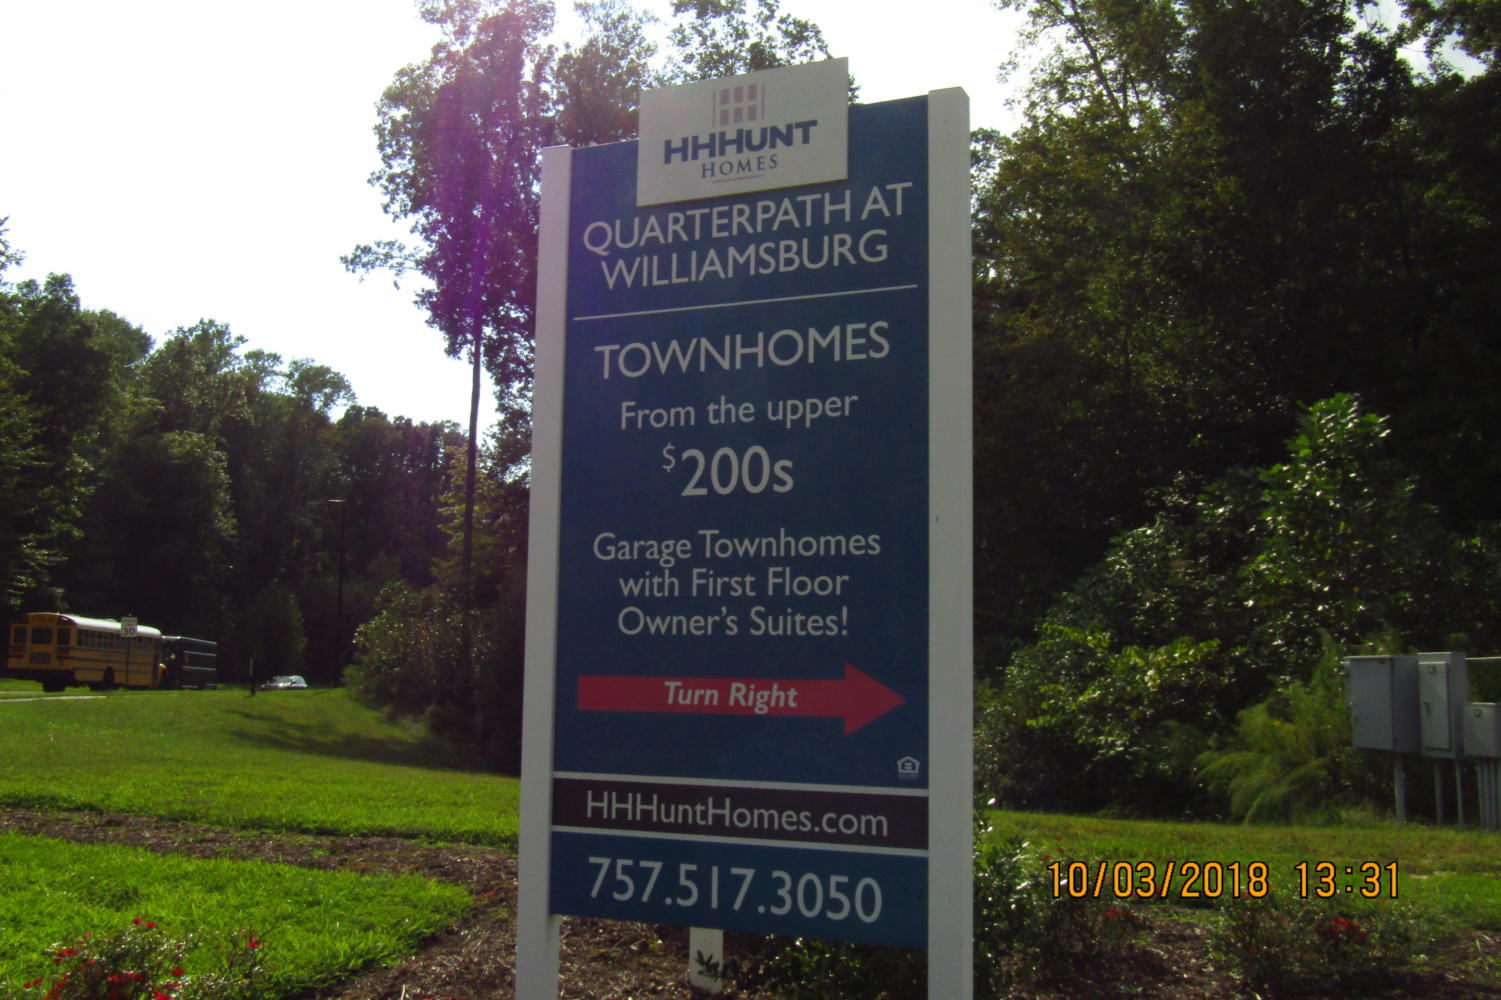 In the city of Williamsburg, new houses are coming quick and selling fast.